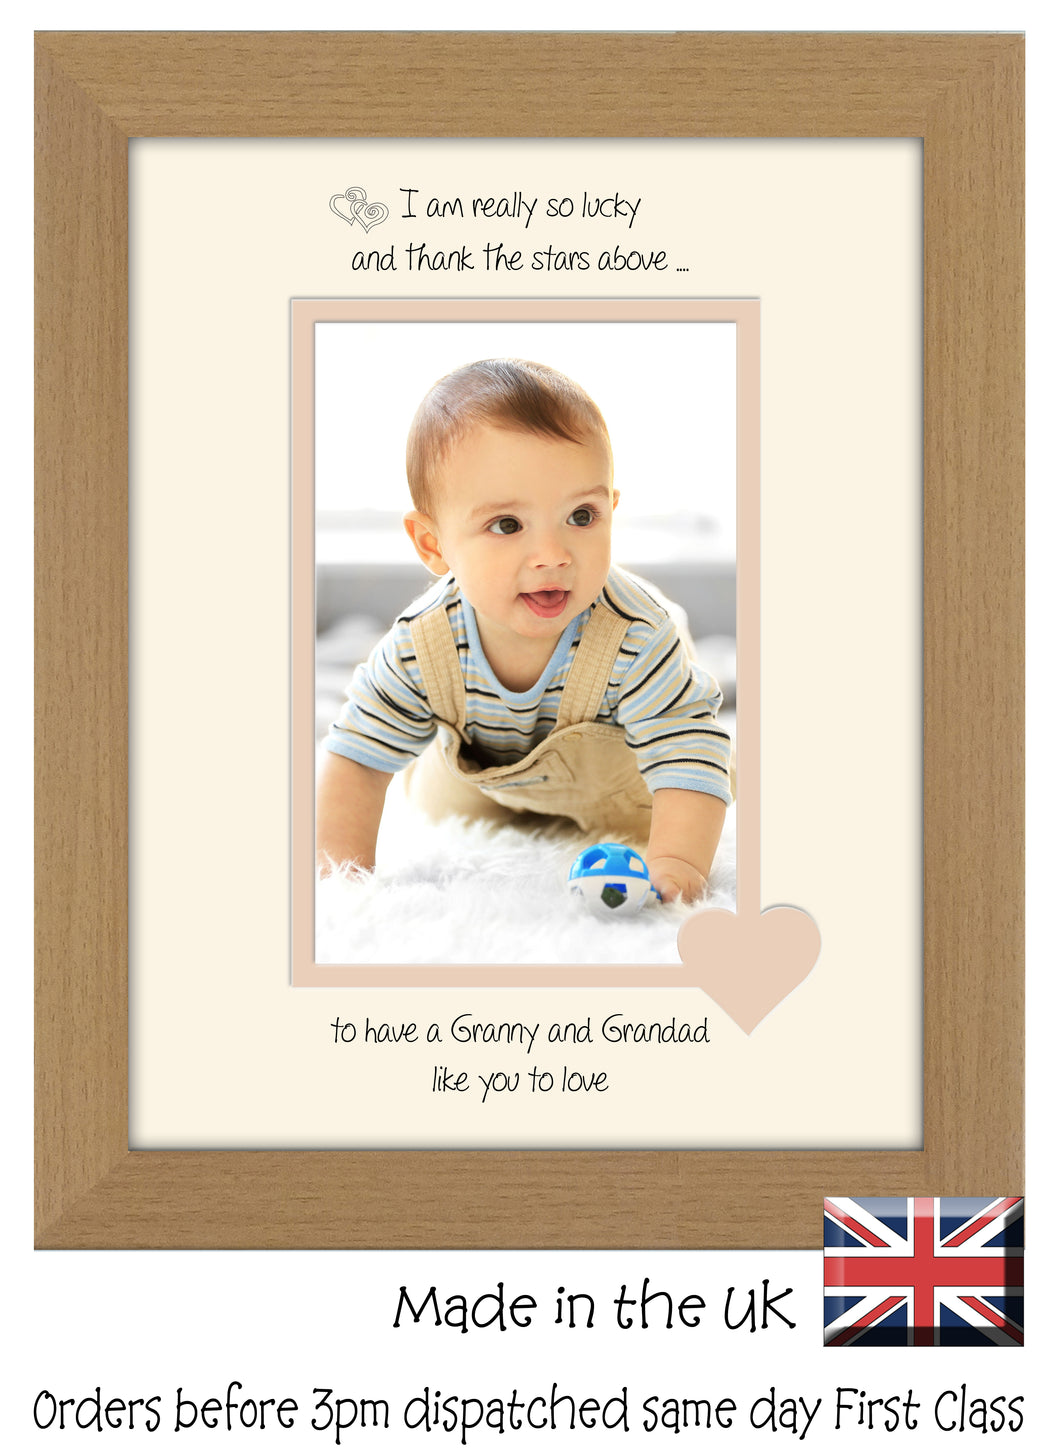 Granny & Grandad Photo Frame - I Thank the stars Granny & Grandad Portrait photo frame 6